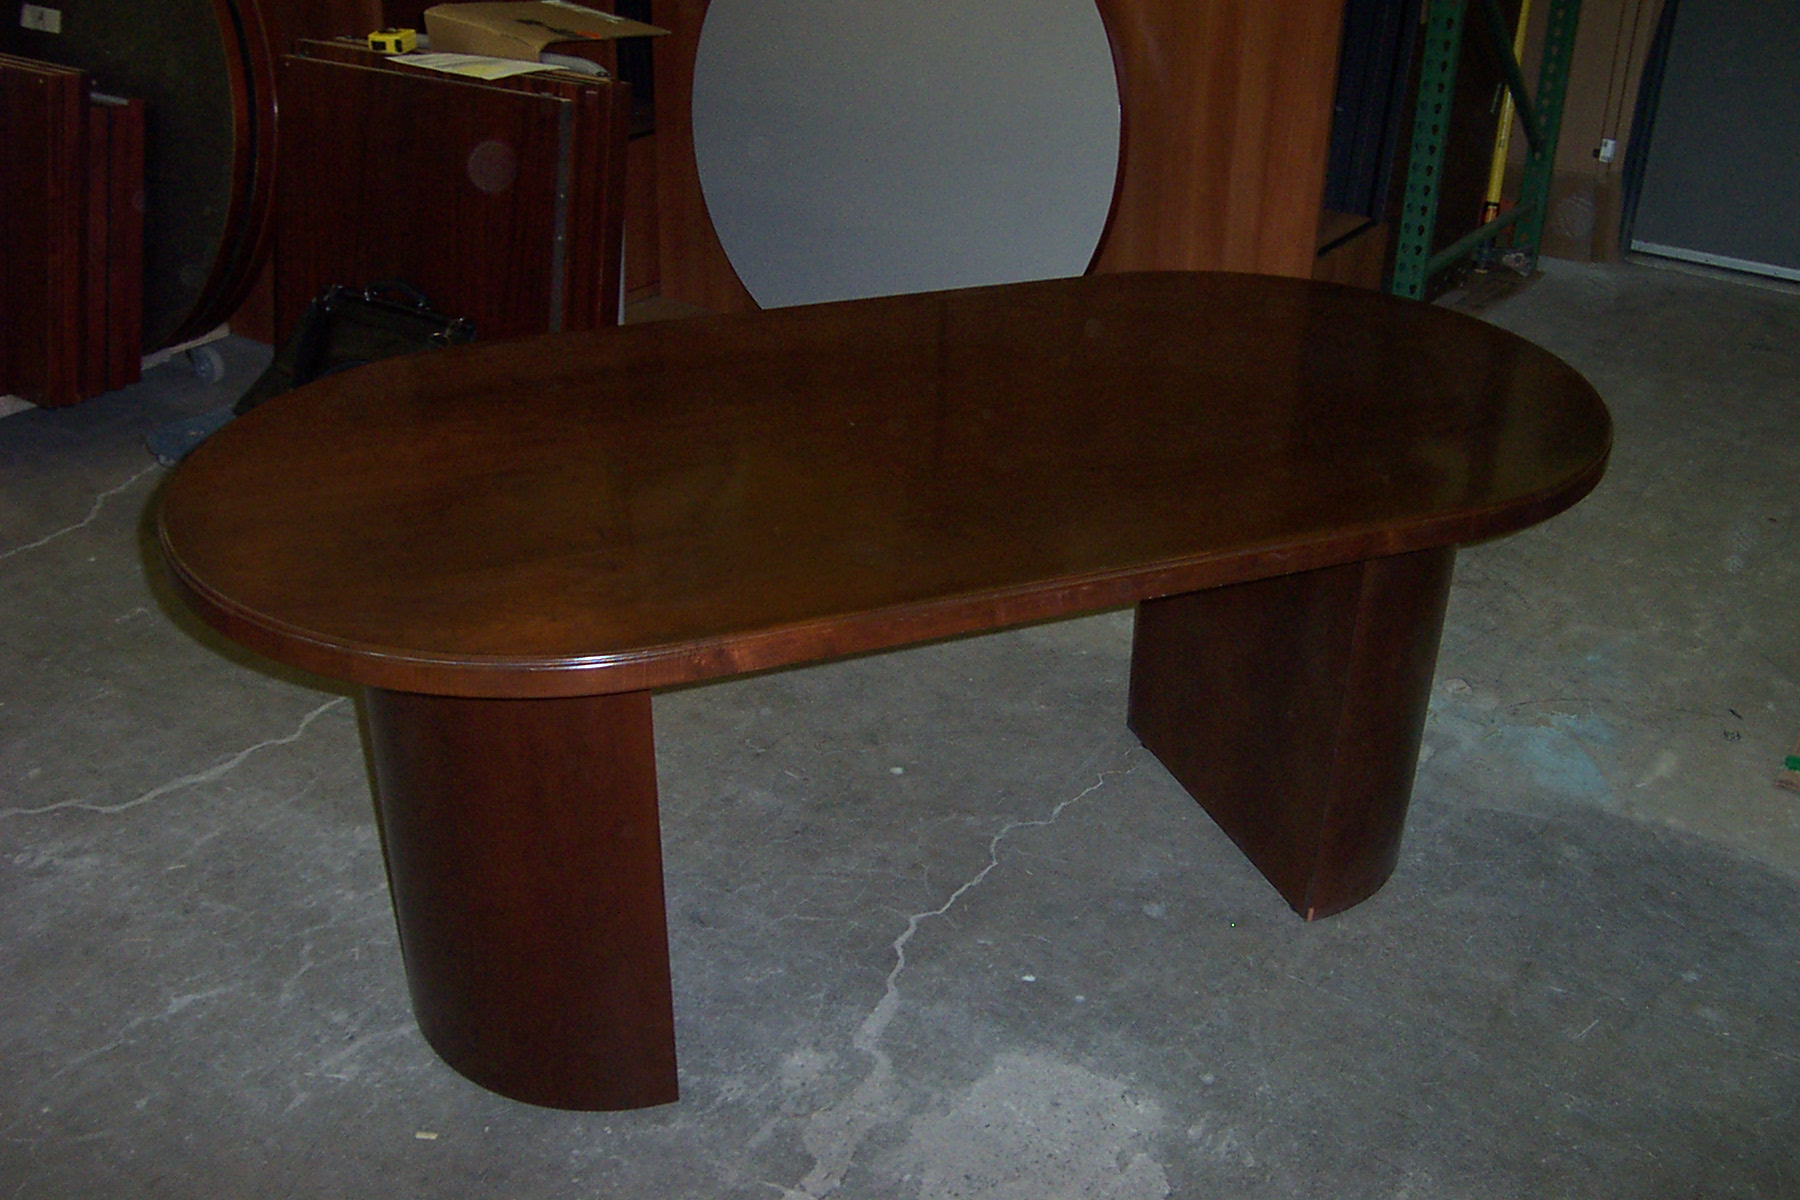 used-conference-table-7